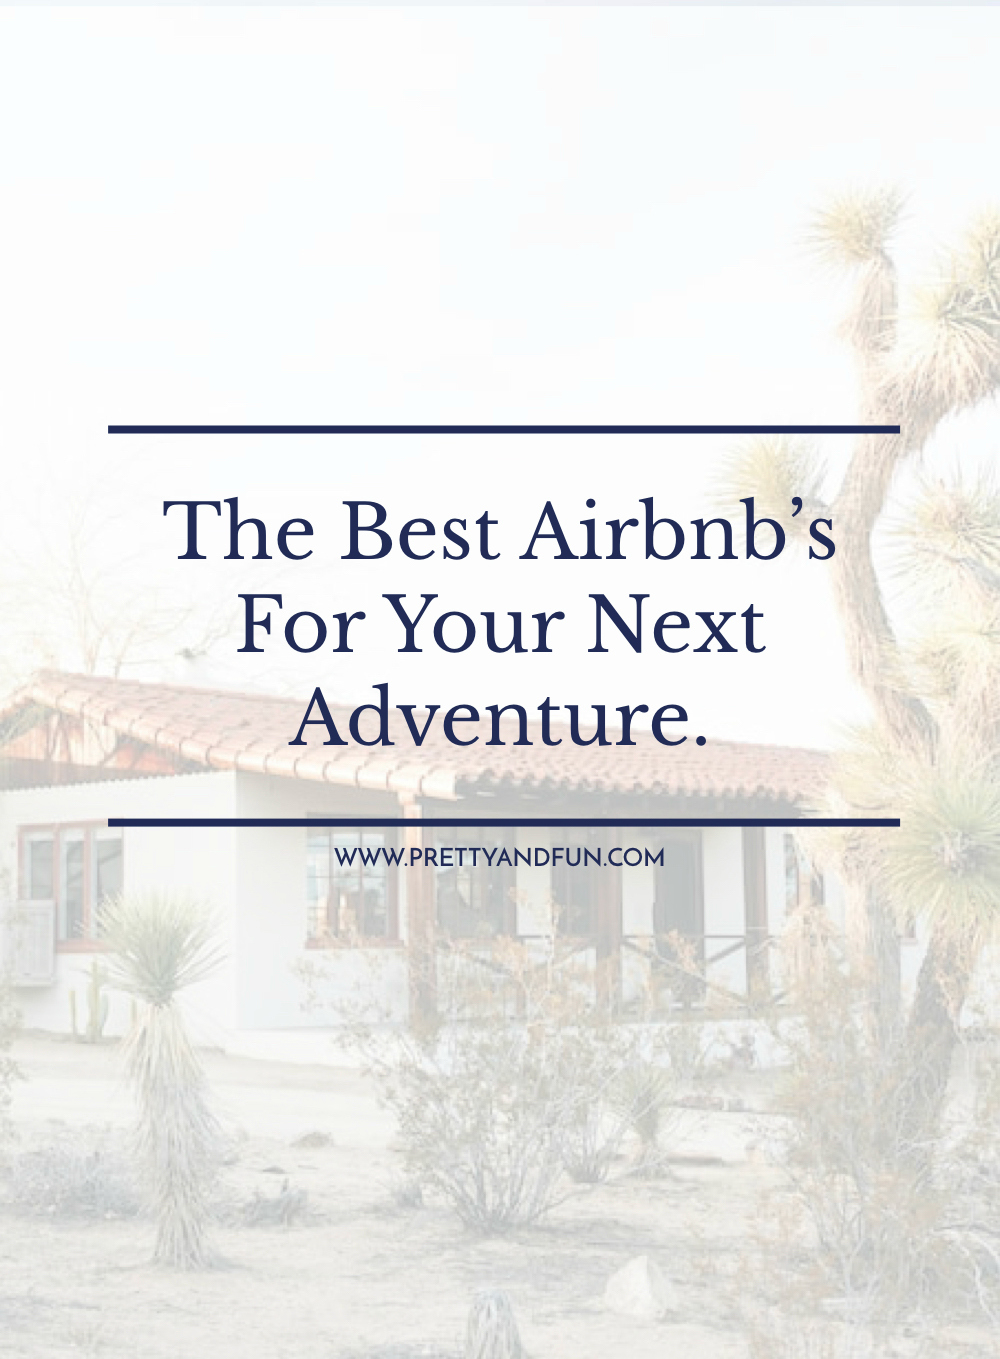 10 Of The Best Airbnbs Across The Globe.